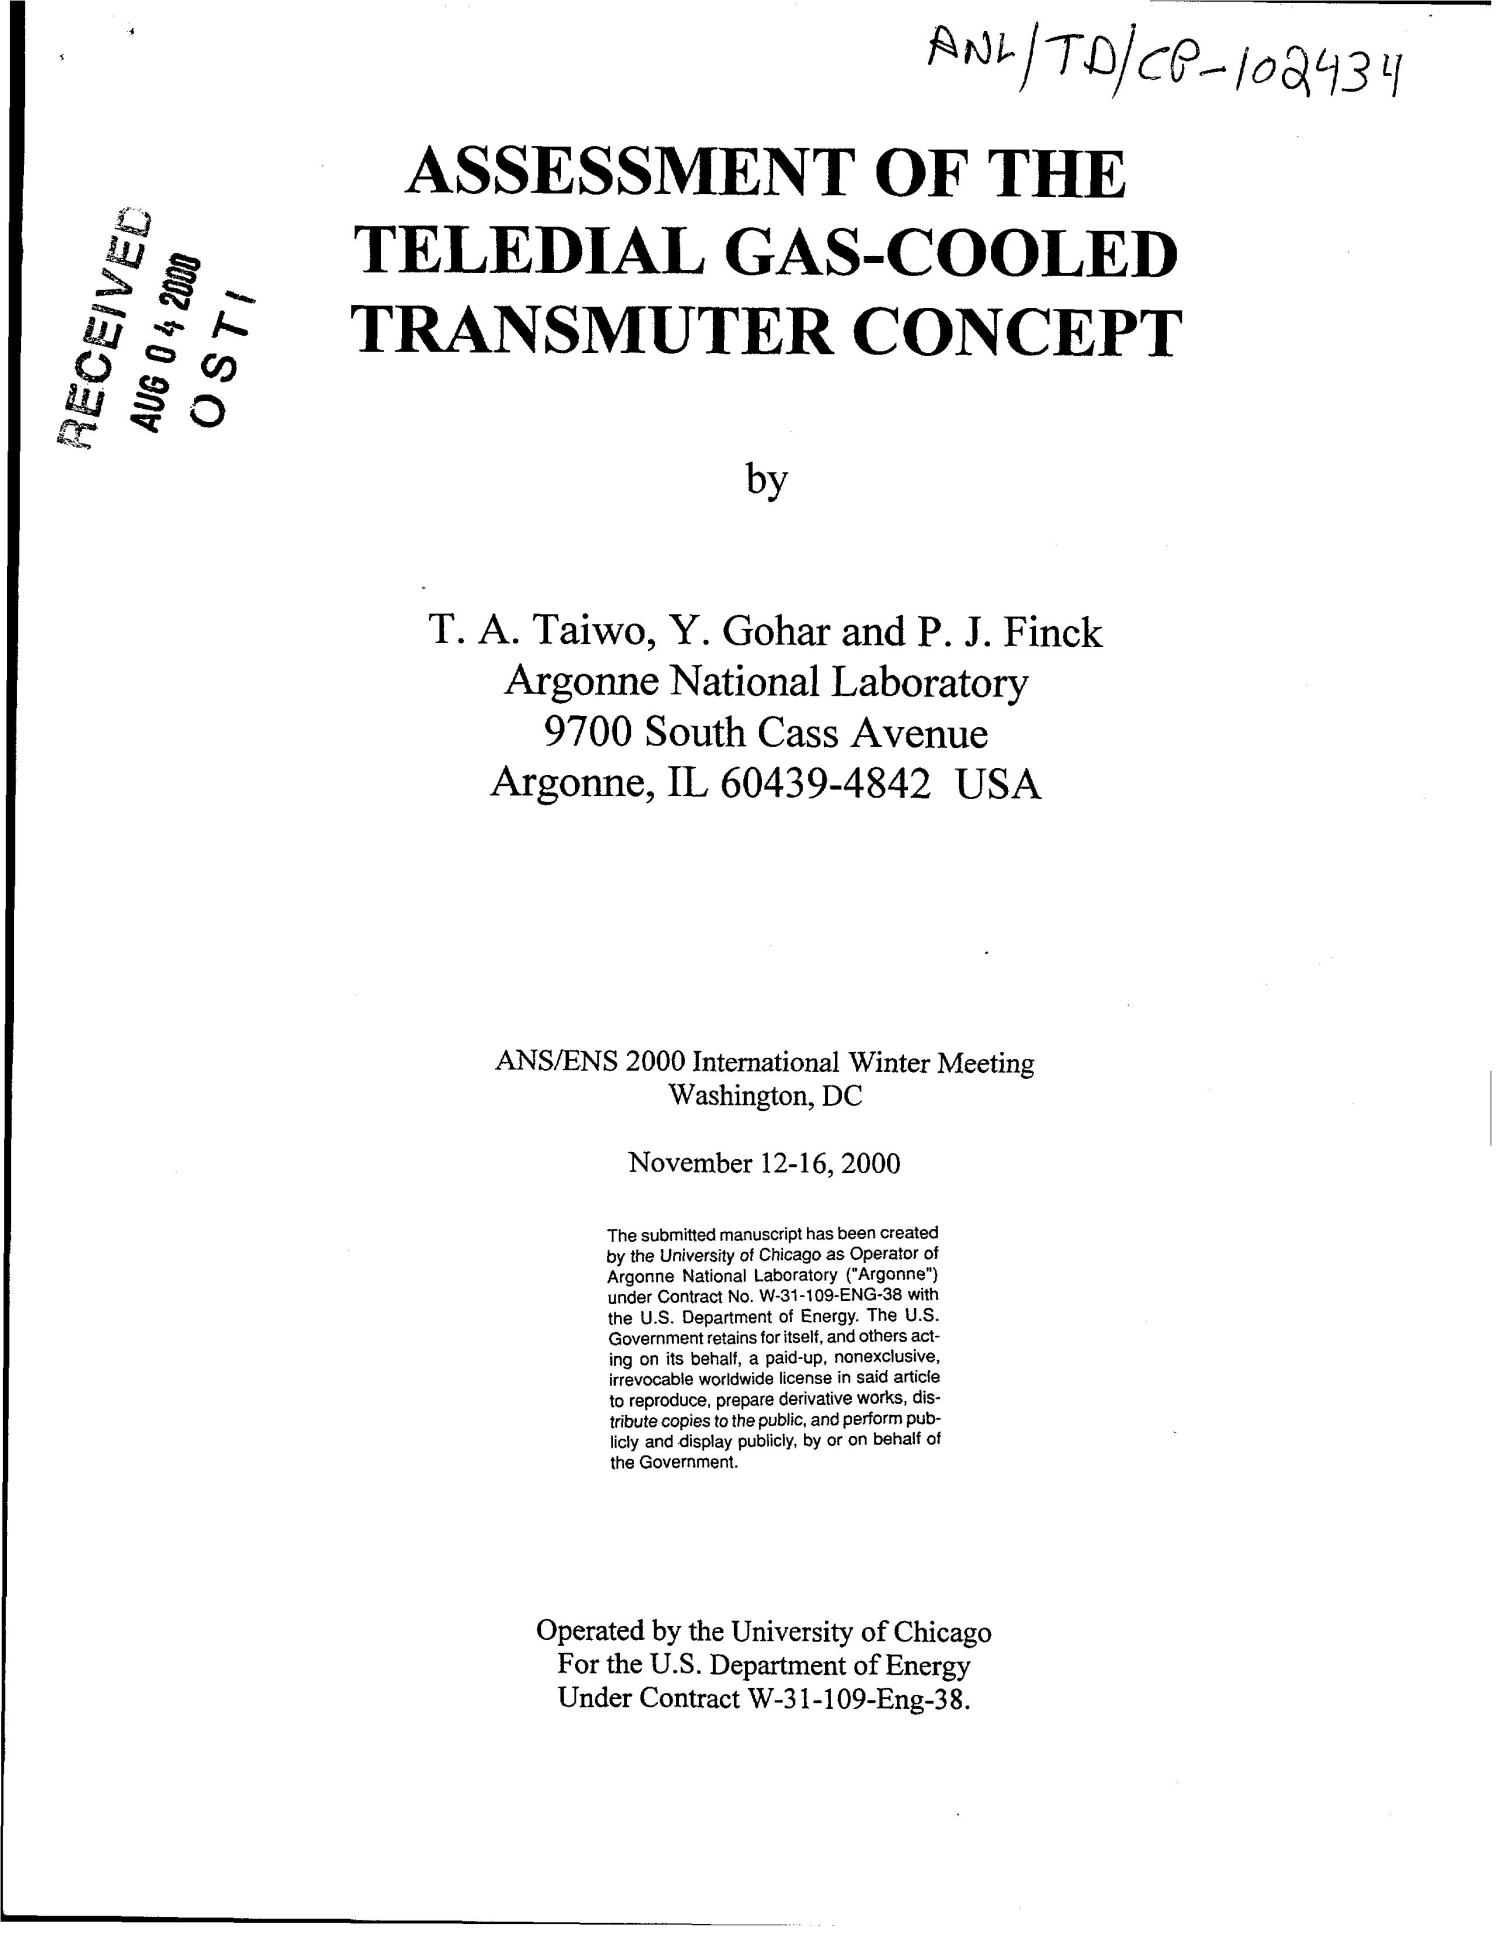 Assessment of the teledial gas-cooled transmuter concept                                                                                                      [Sequence #]: 1 of 8